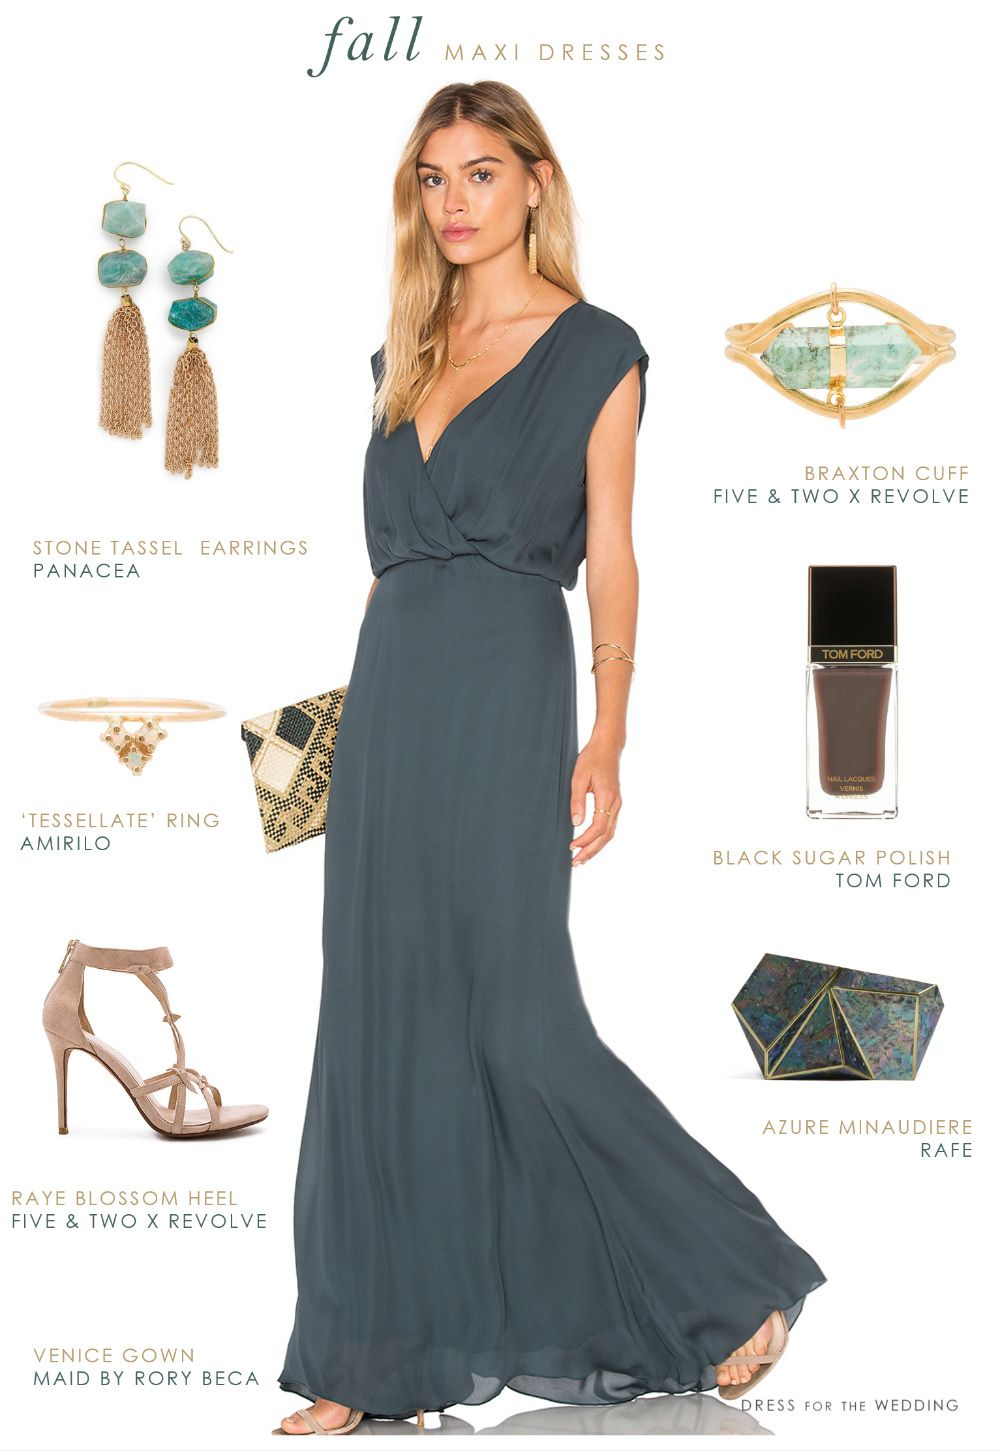 Maxi Dresses for Fall Weddings Dresses to wear to a